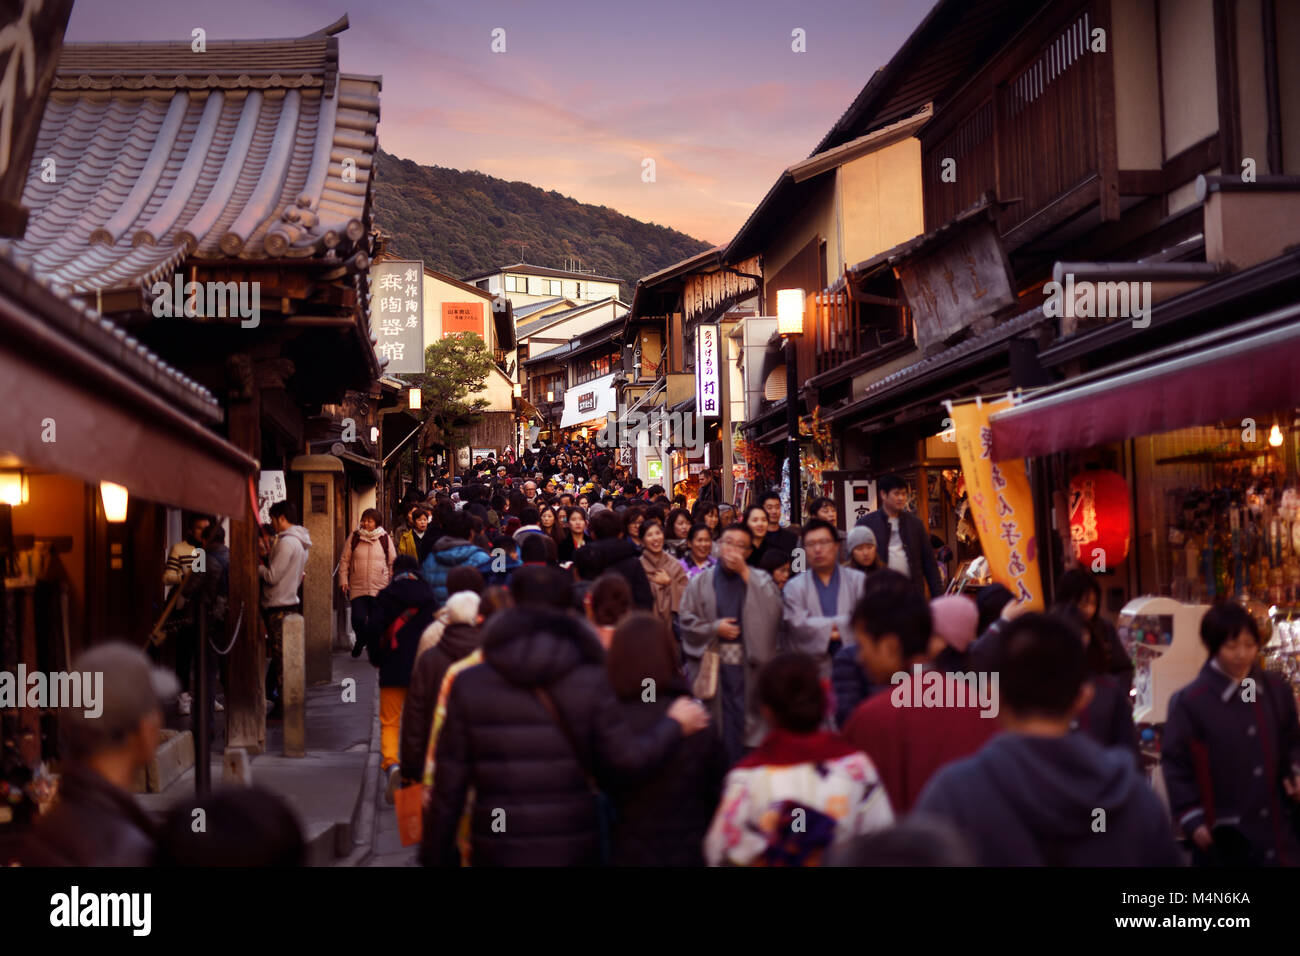 Crowded with people, Matsubara dori street full of souvenir shops and restaurants, near Kiyomizu-dera temple during - Stock Image